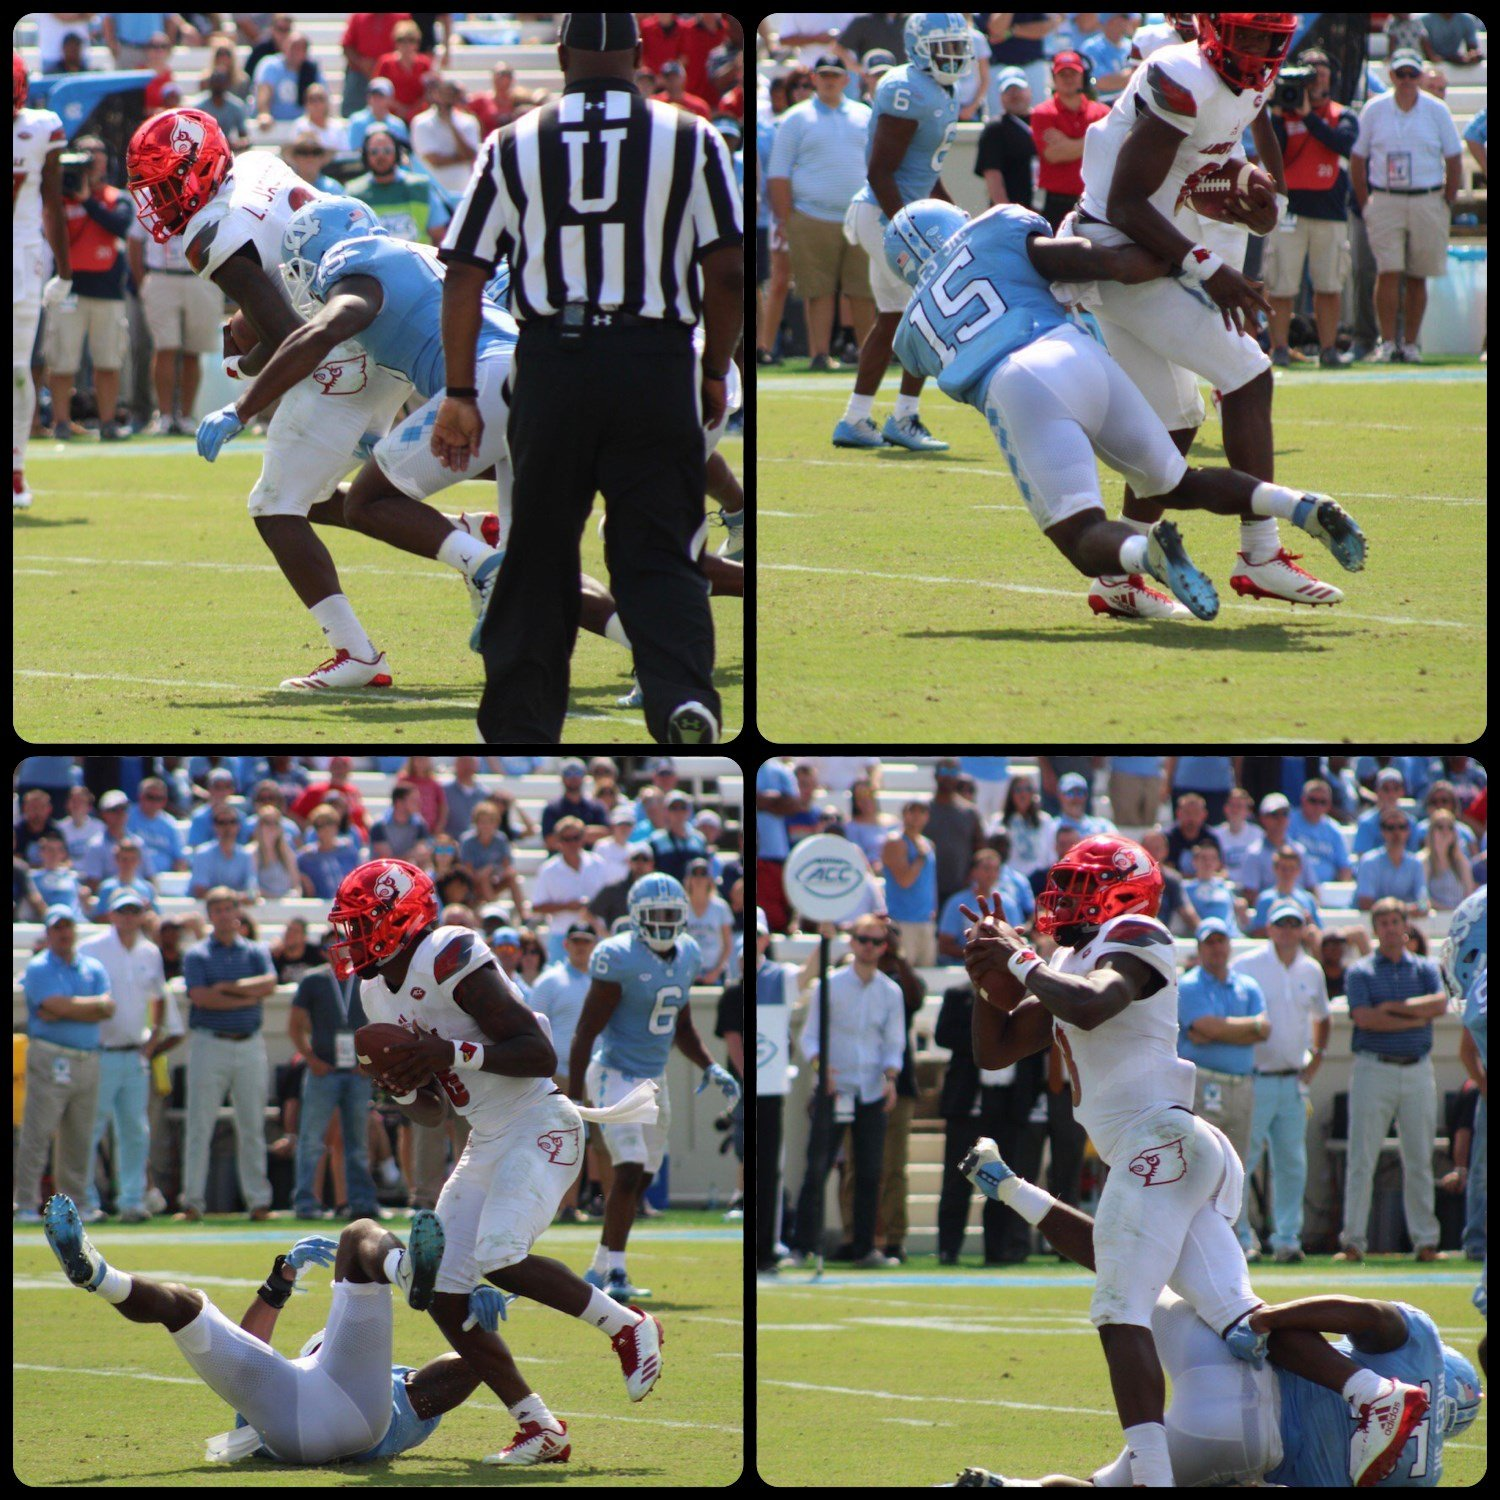 A four-photo sequence on Jackson's final twist, just before diving into the end zone, shows the frustration involved in tackling Lamar Jackson. (WDRB photos by Eric Crawford)